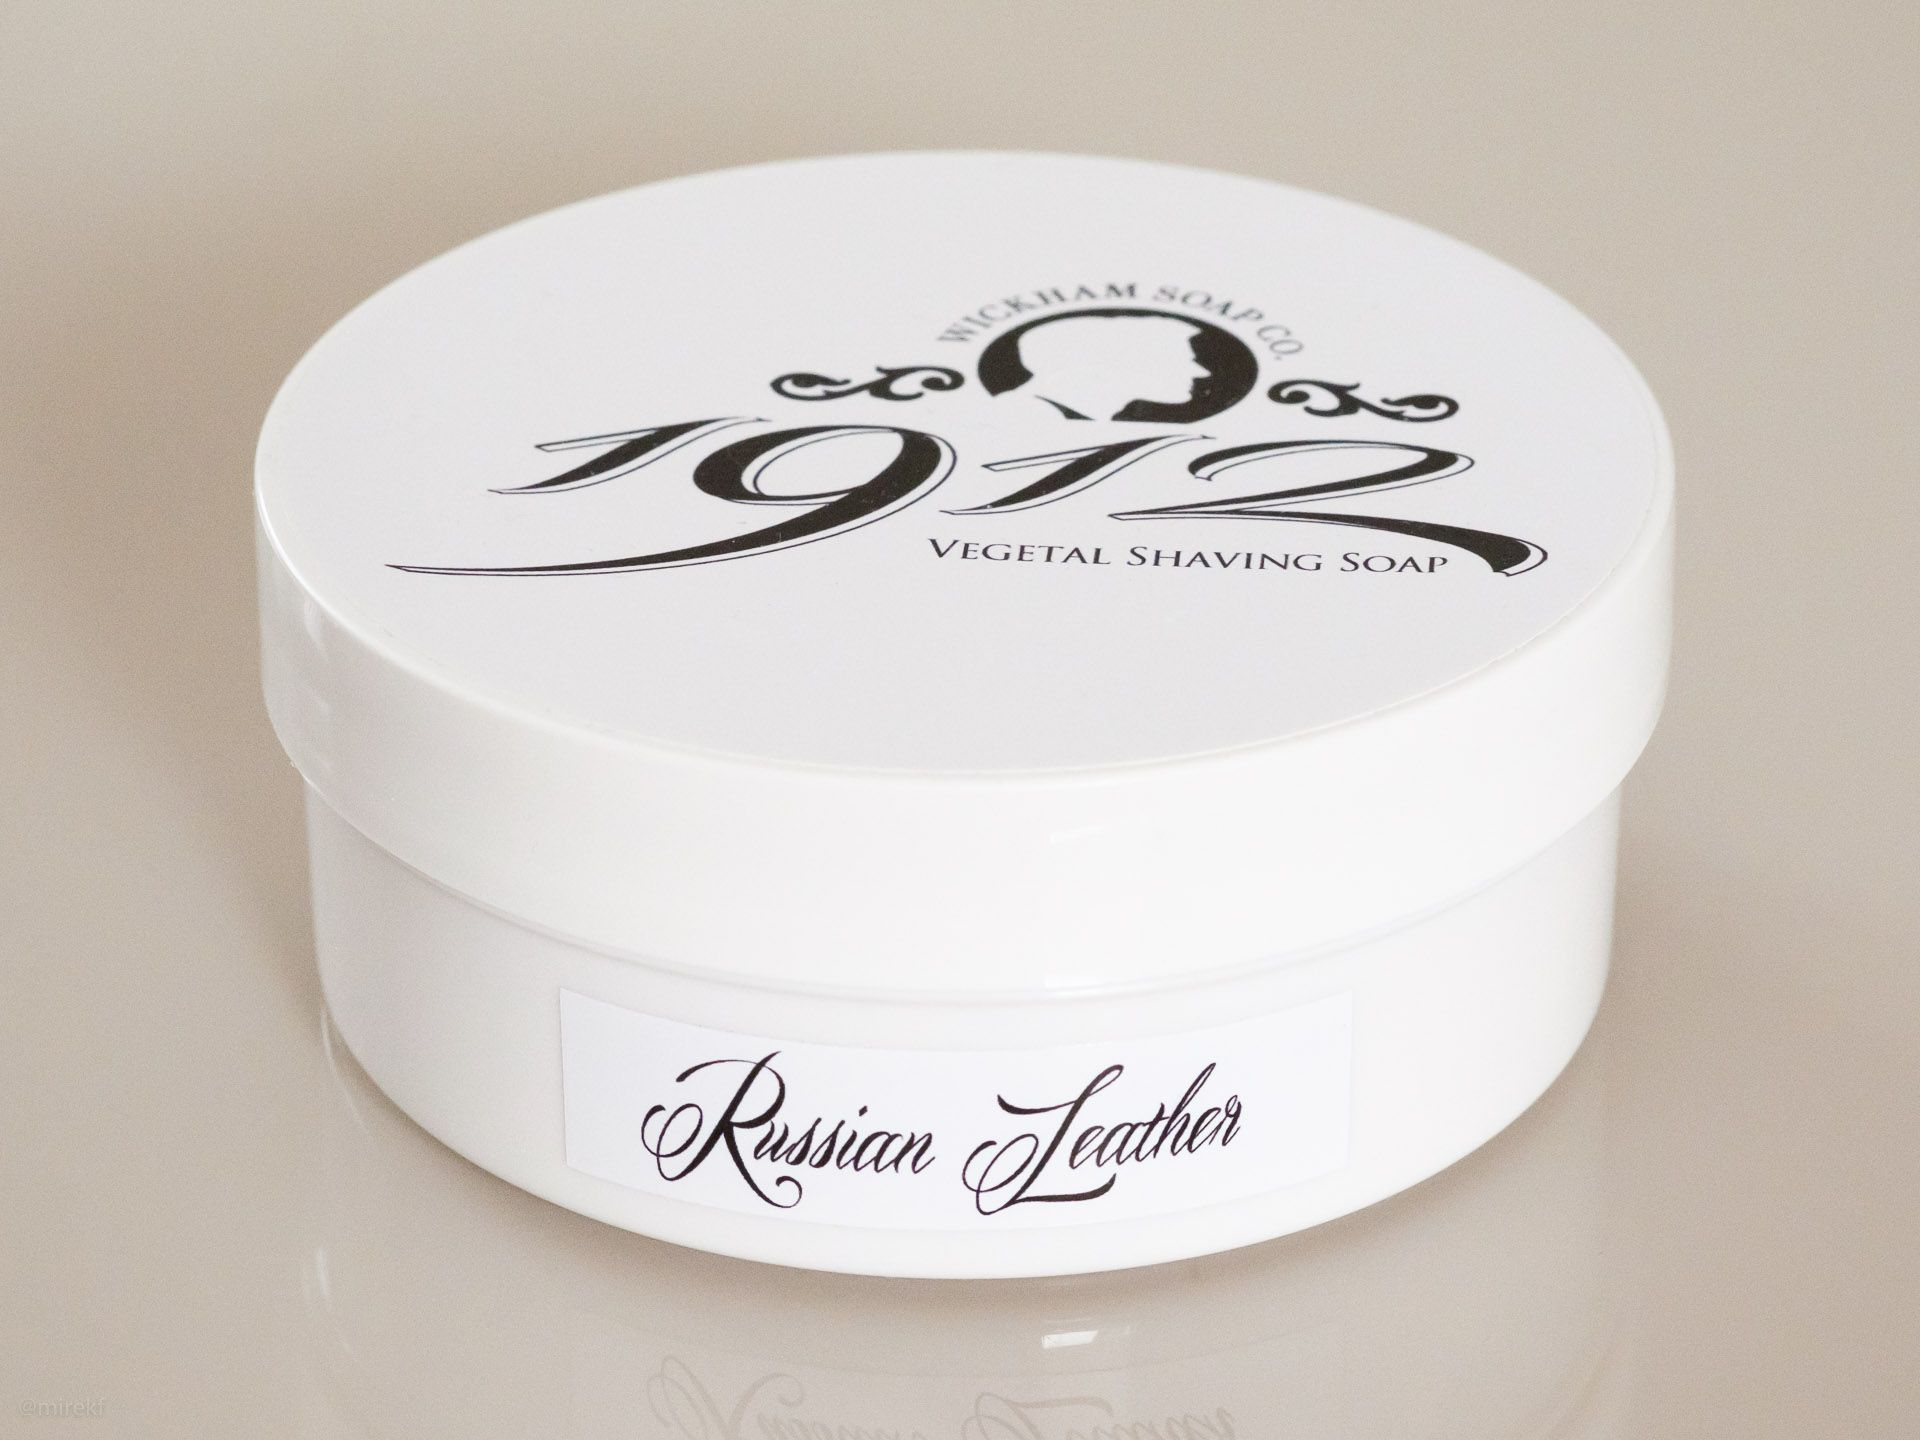 You are currently viewing Wickham 1912 Russian Leather Shaving Soap – recenzja mydła do golenia